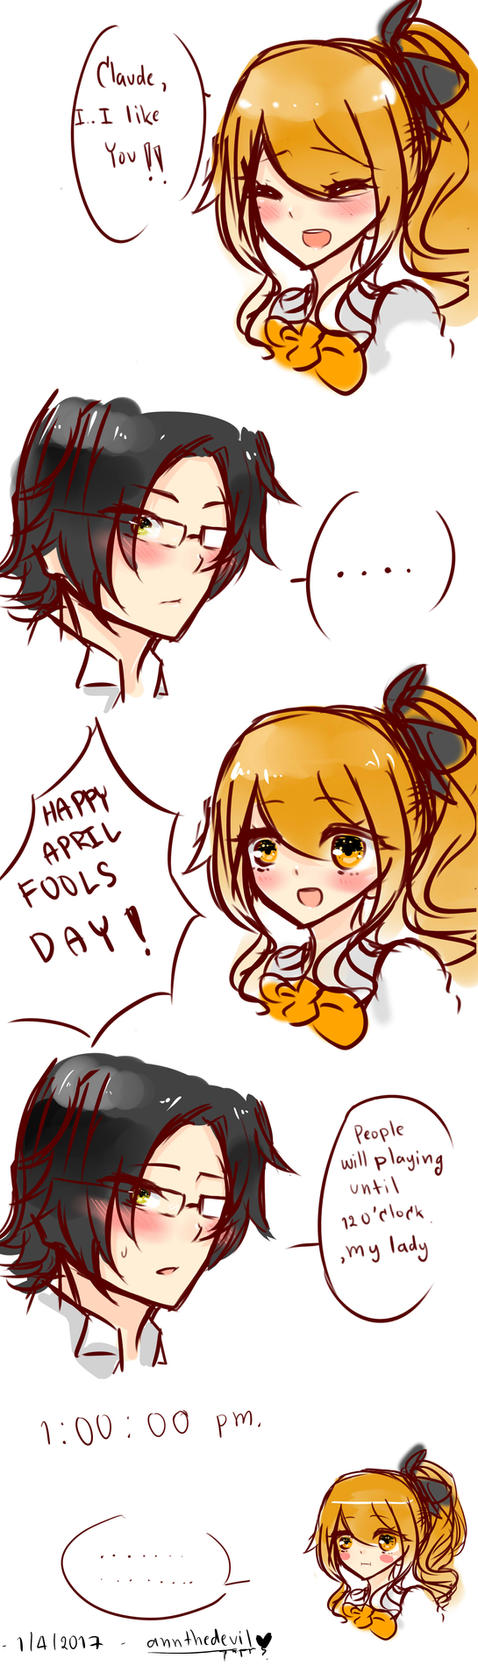 April Fools Day  (( Claude x Amanda )) by annthedevil